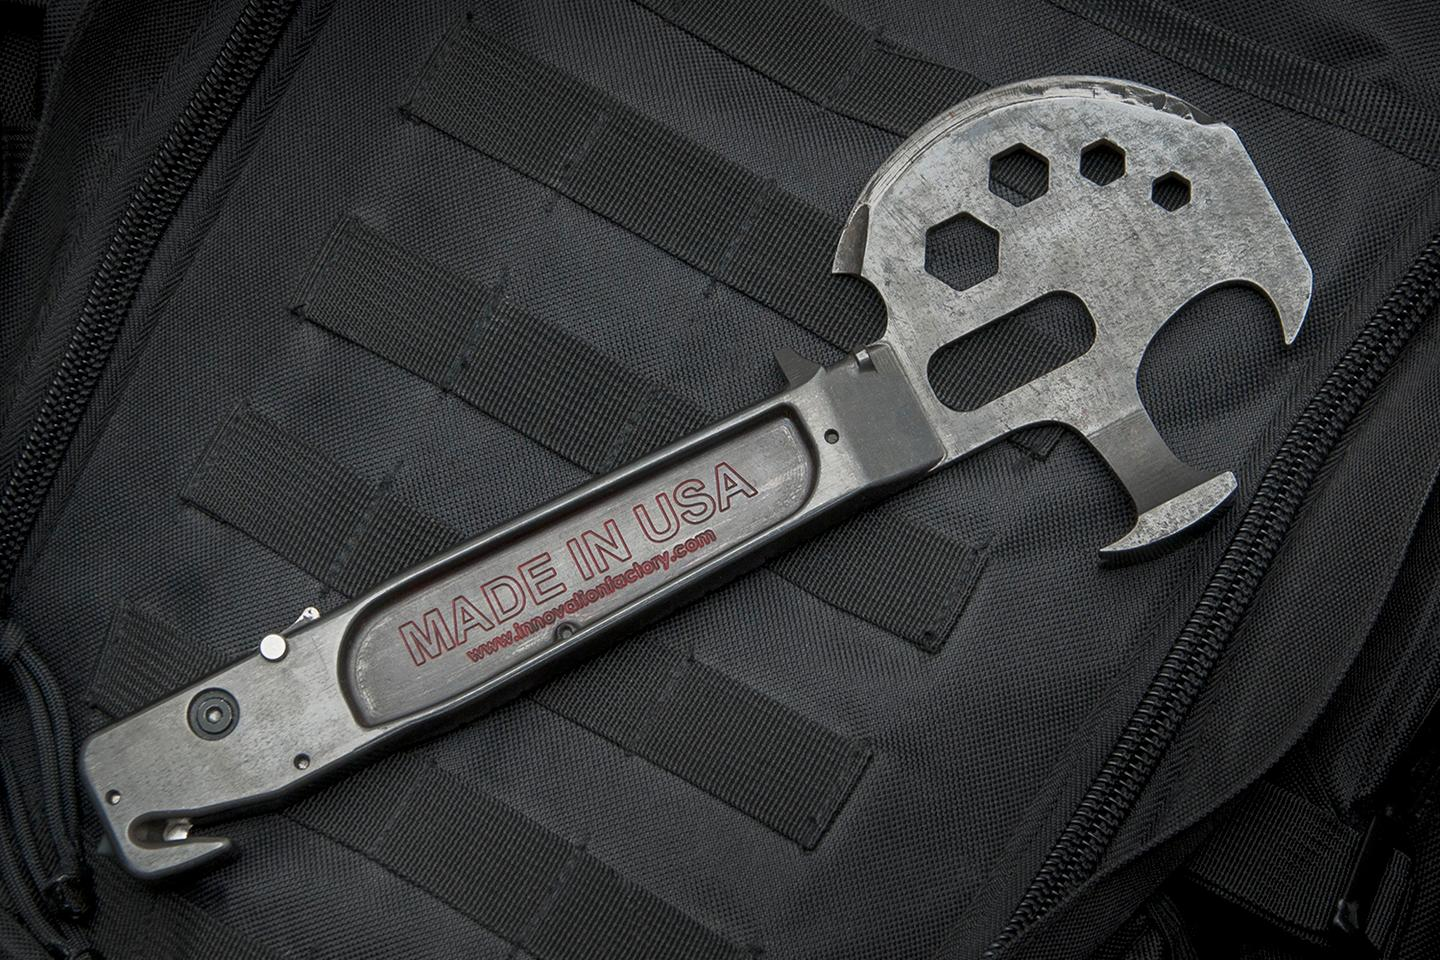 The Lil Trucker multitool was designed by firefighters to be useful in an emergency